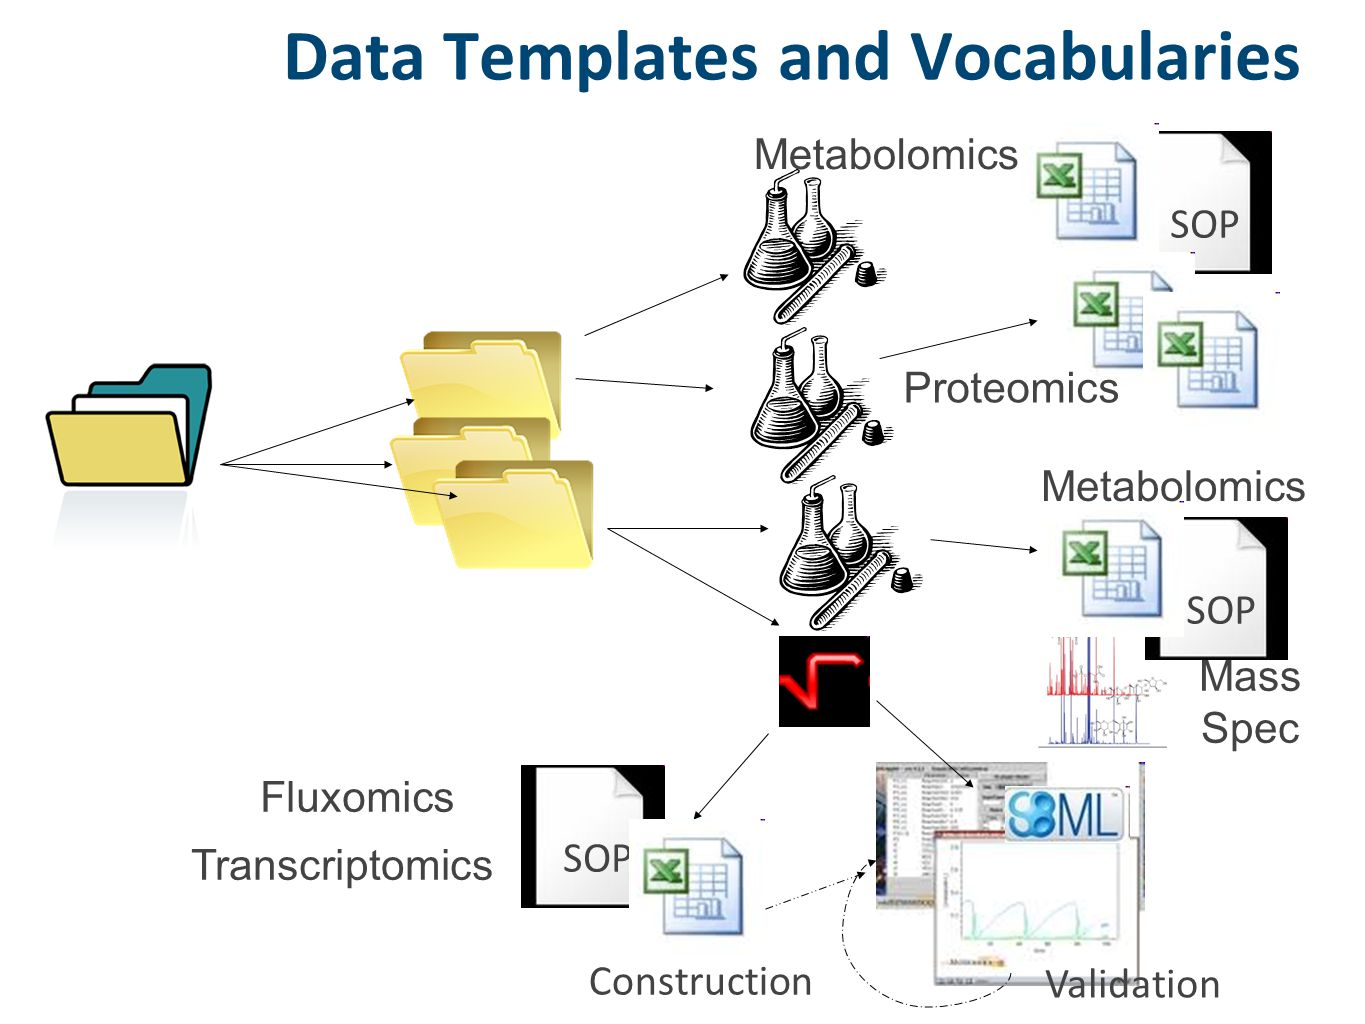 SOP Data Templates and Vocabularies Construction Validation SOP Metabolomics Mass Spec Transcriptomics Proteomics Fluxomics